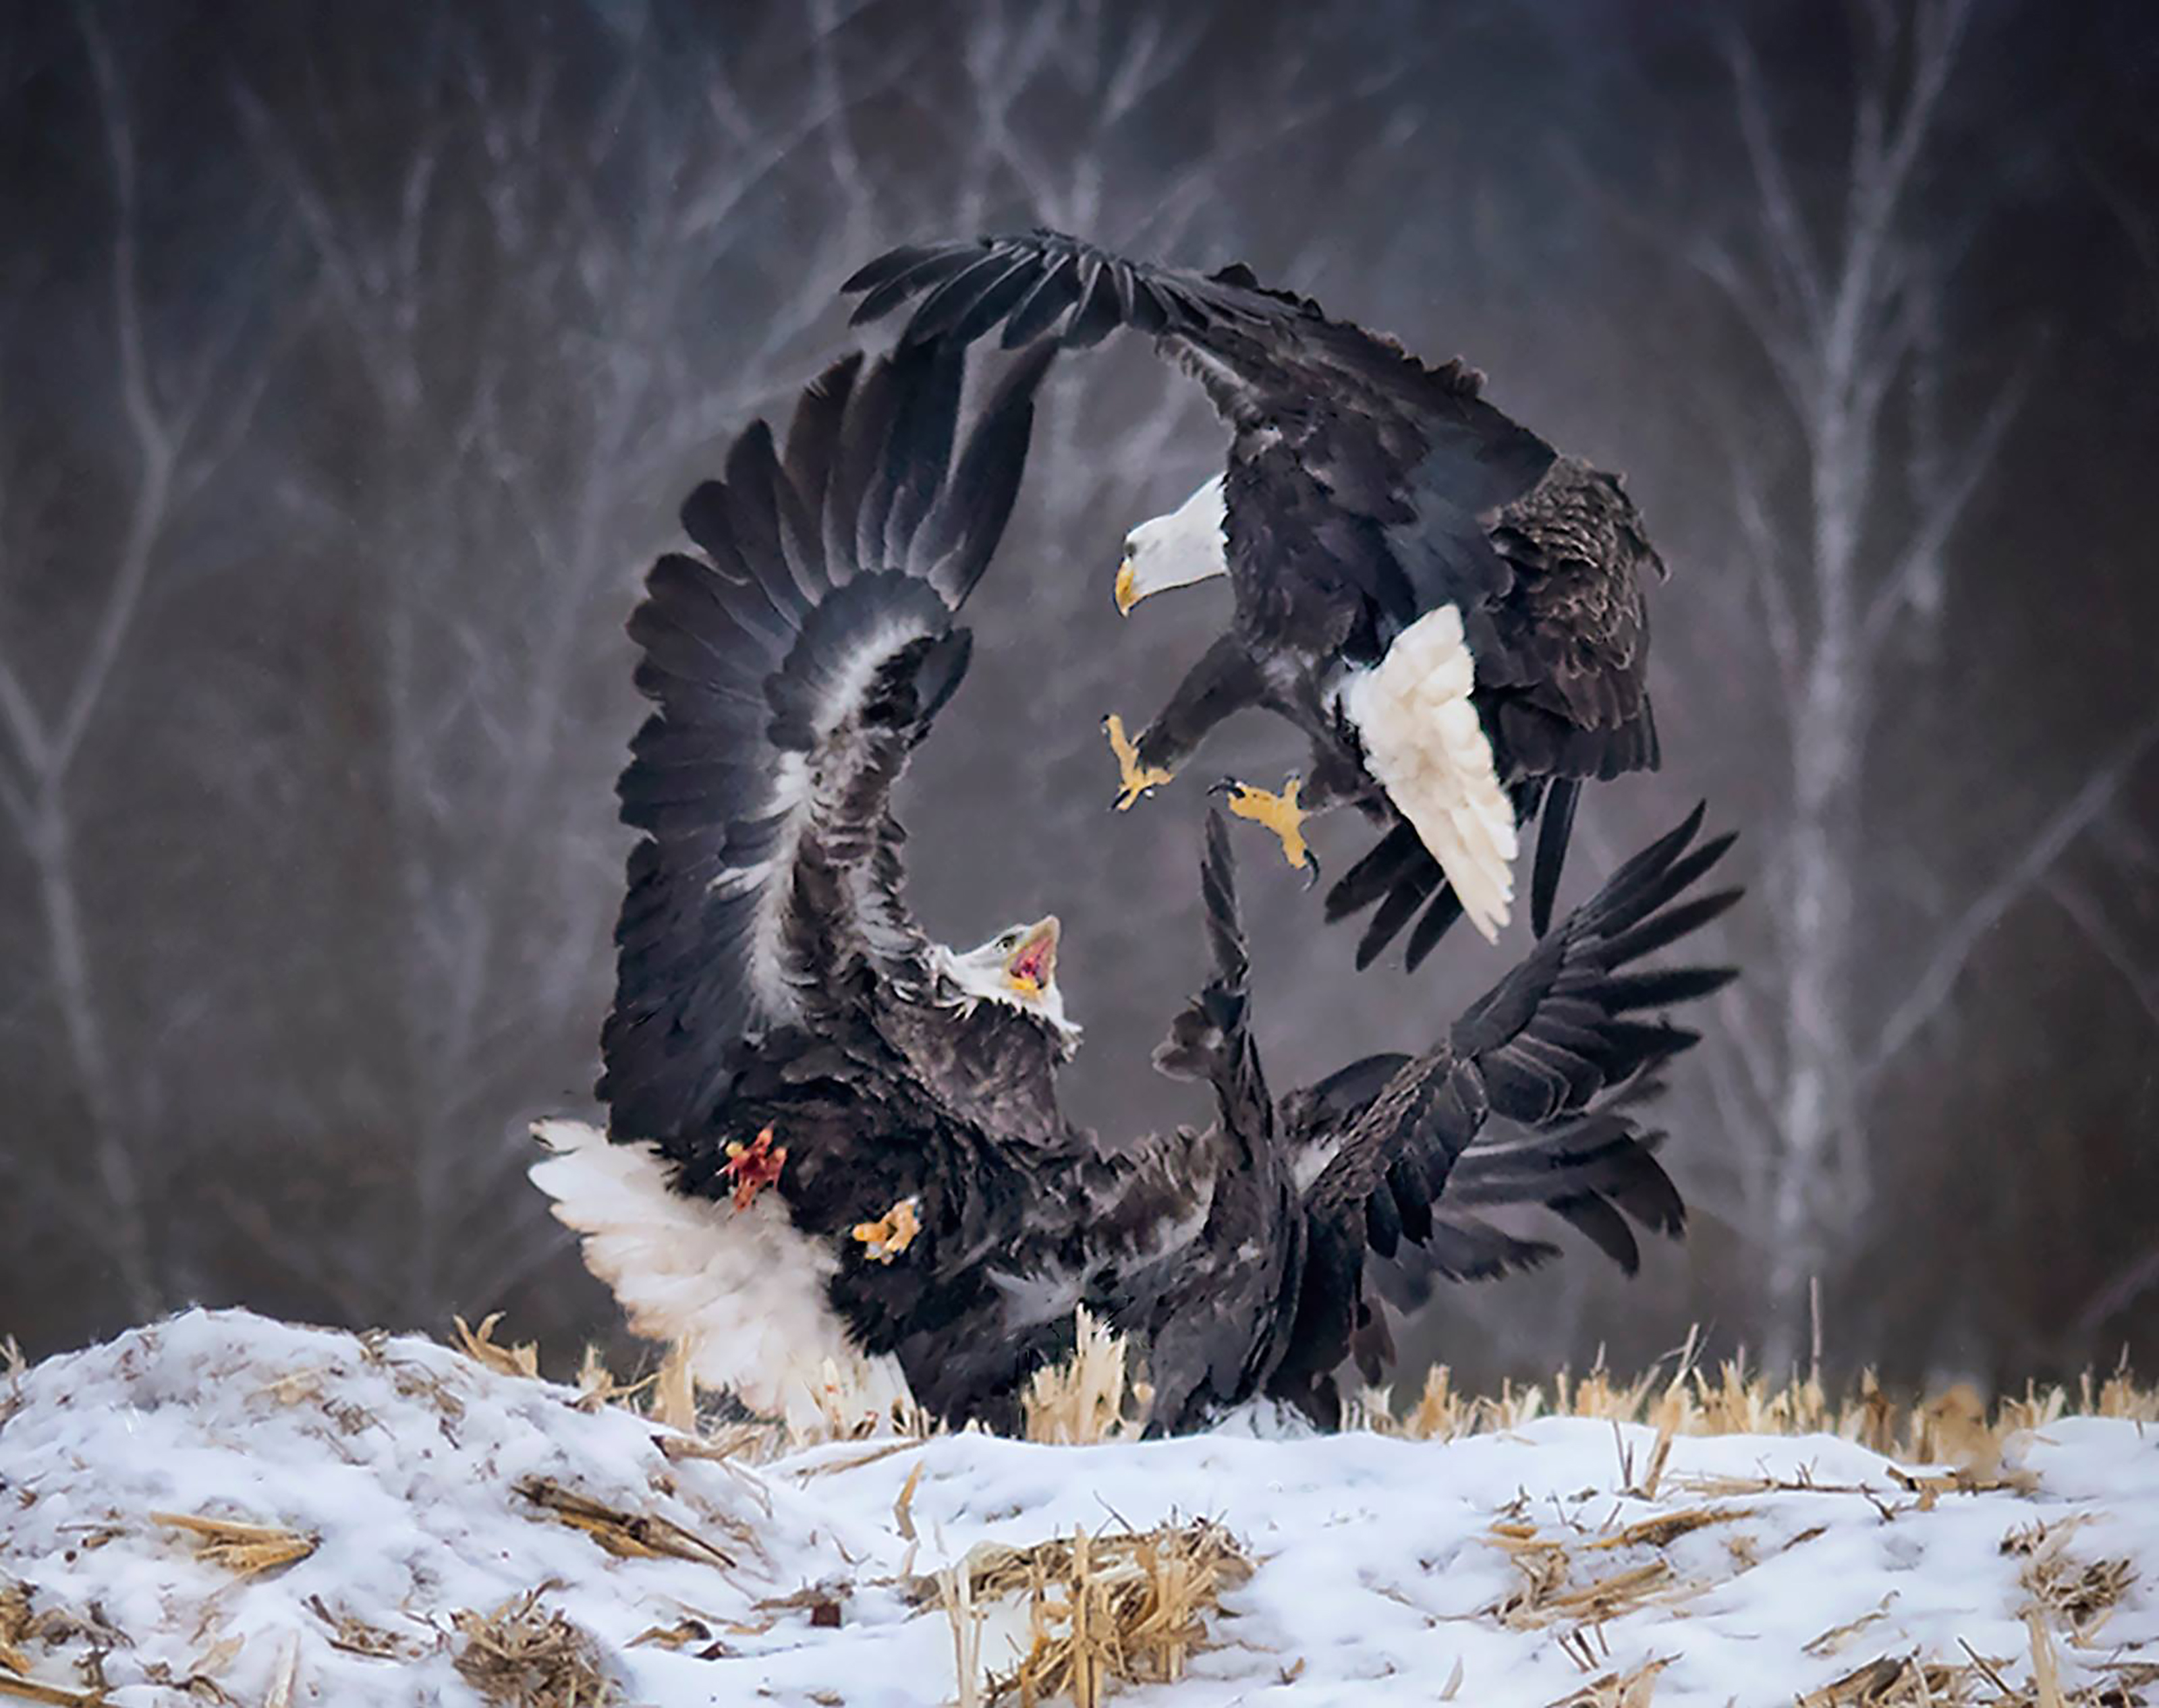 Two eagles fighting